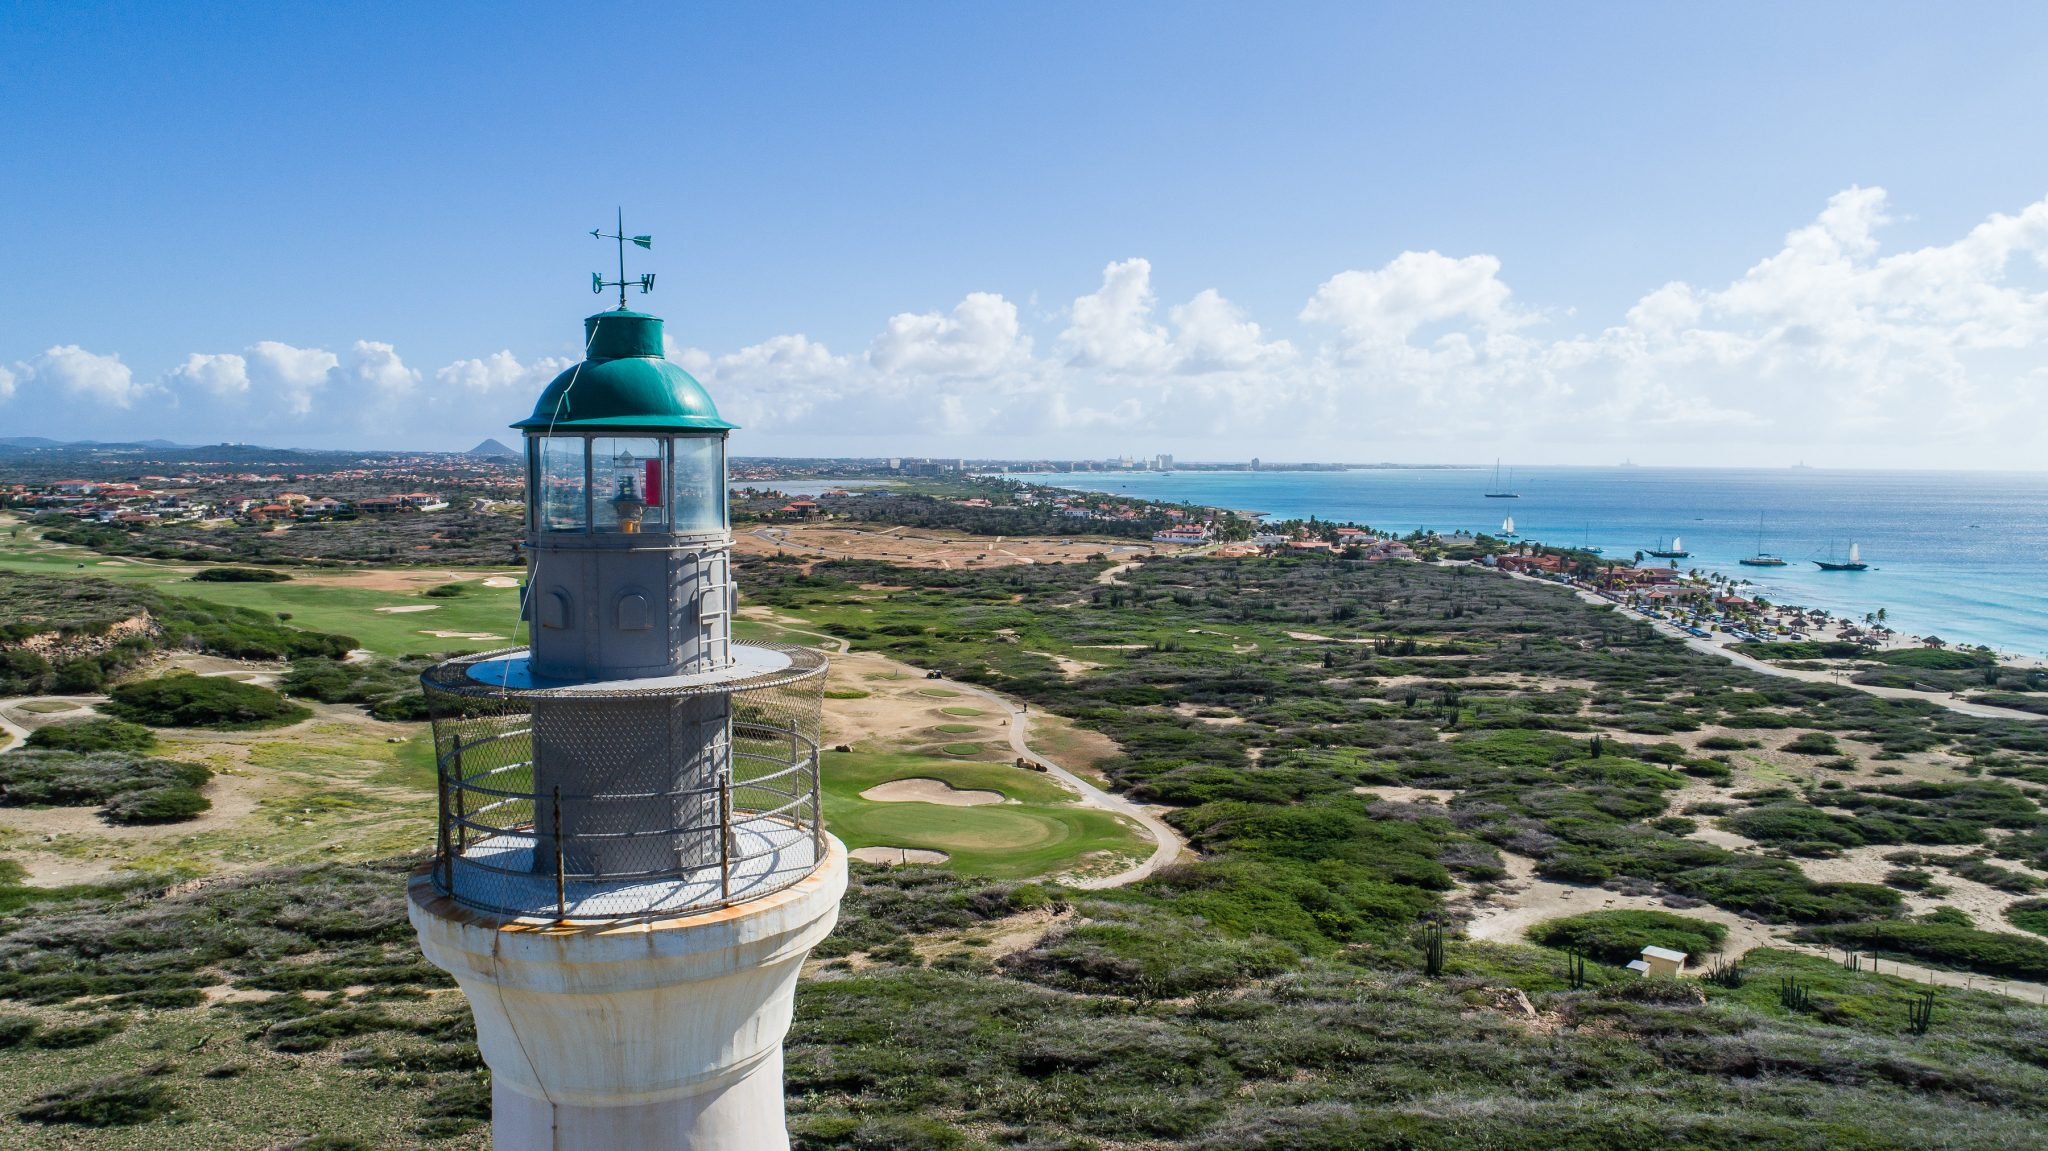 view from California Lighthouse in Aruba